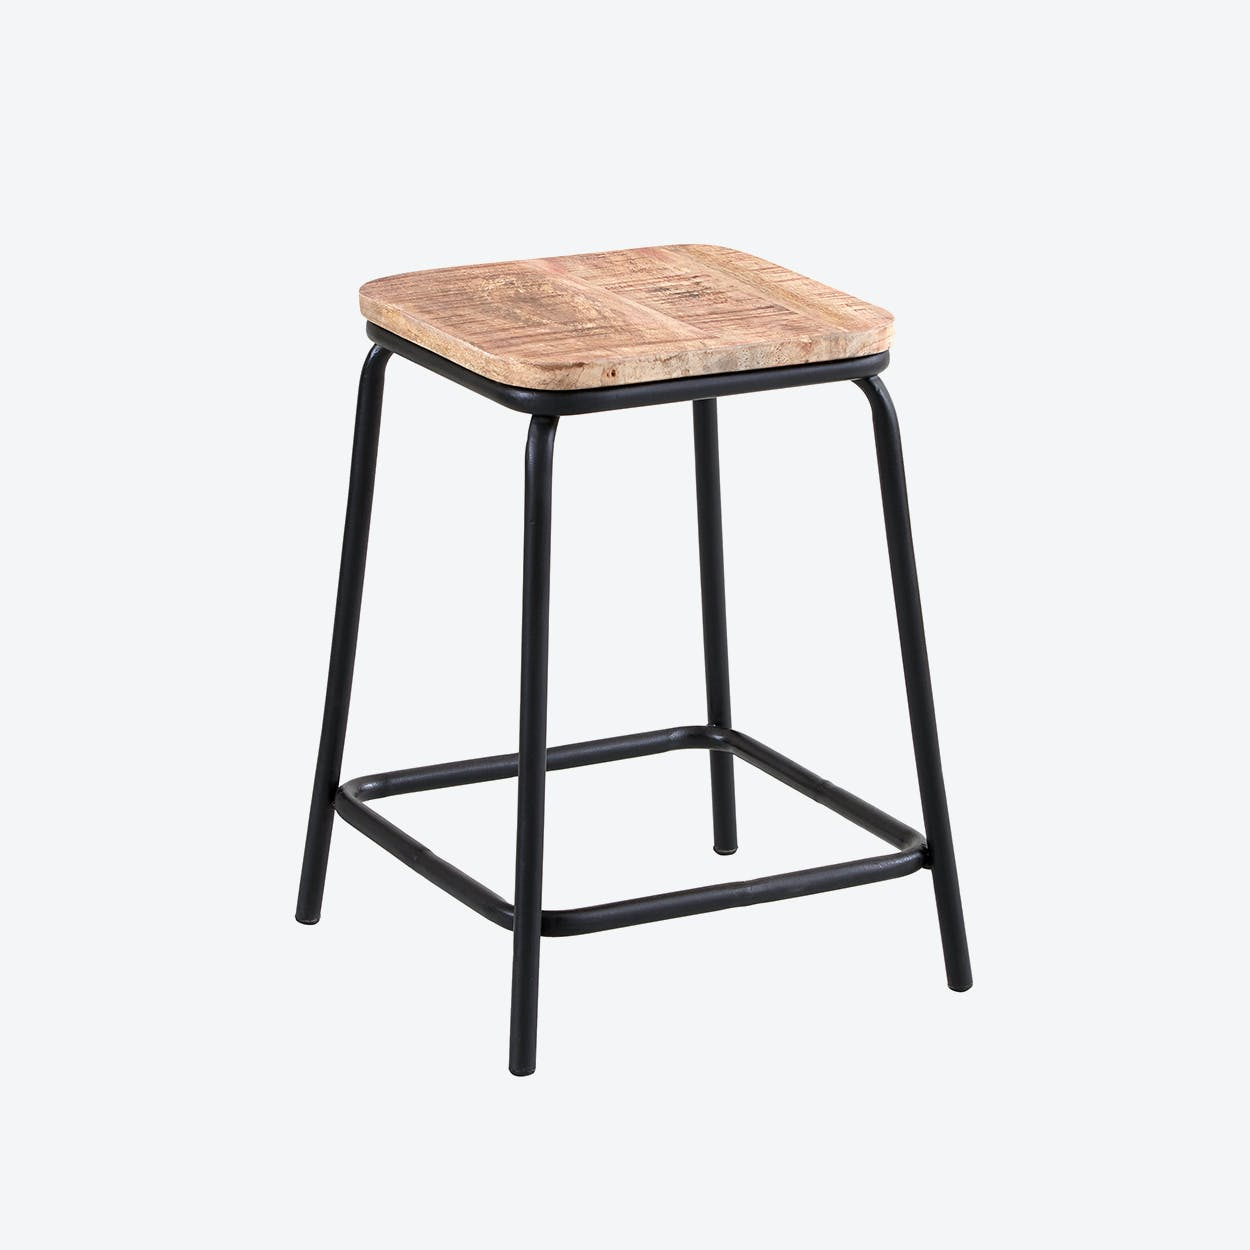 Mango Wood Bar Stool Short